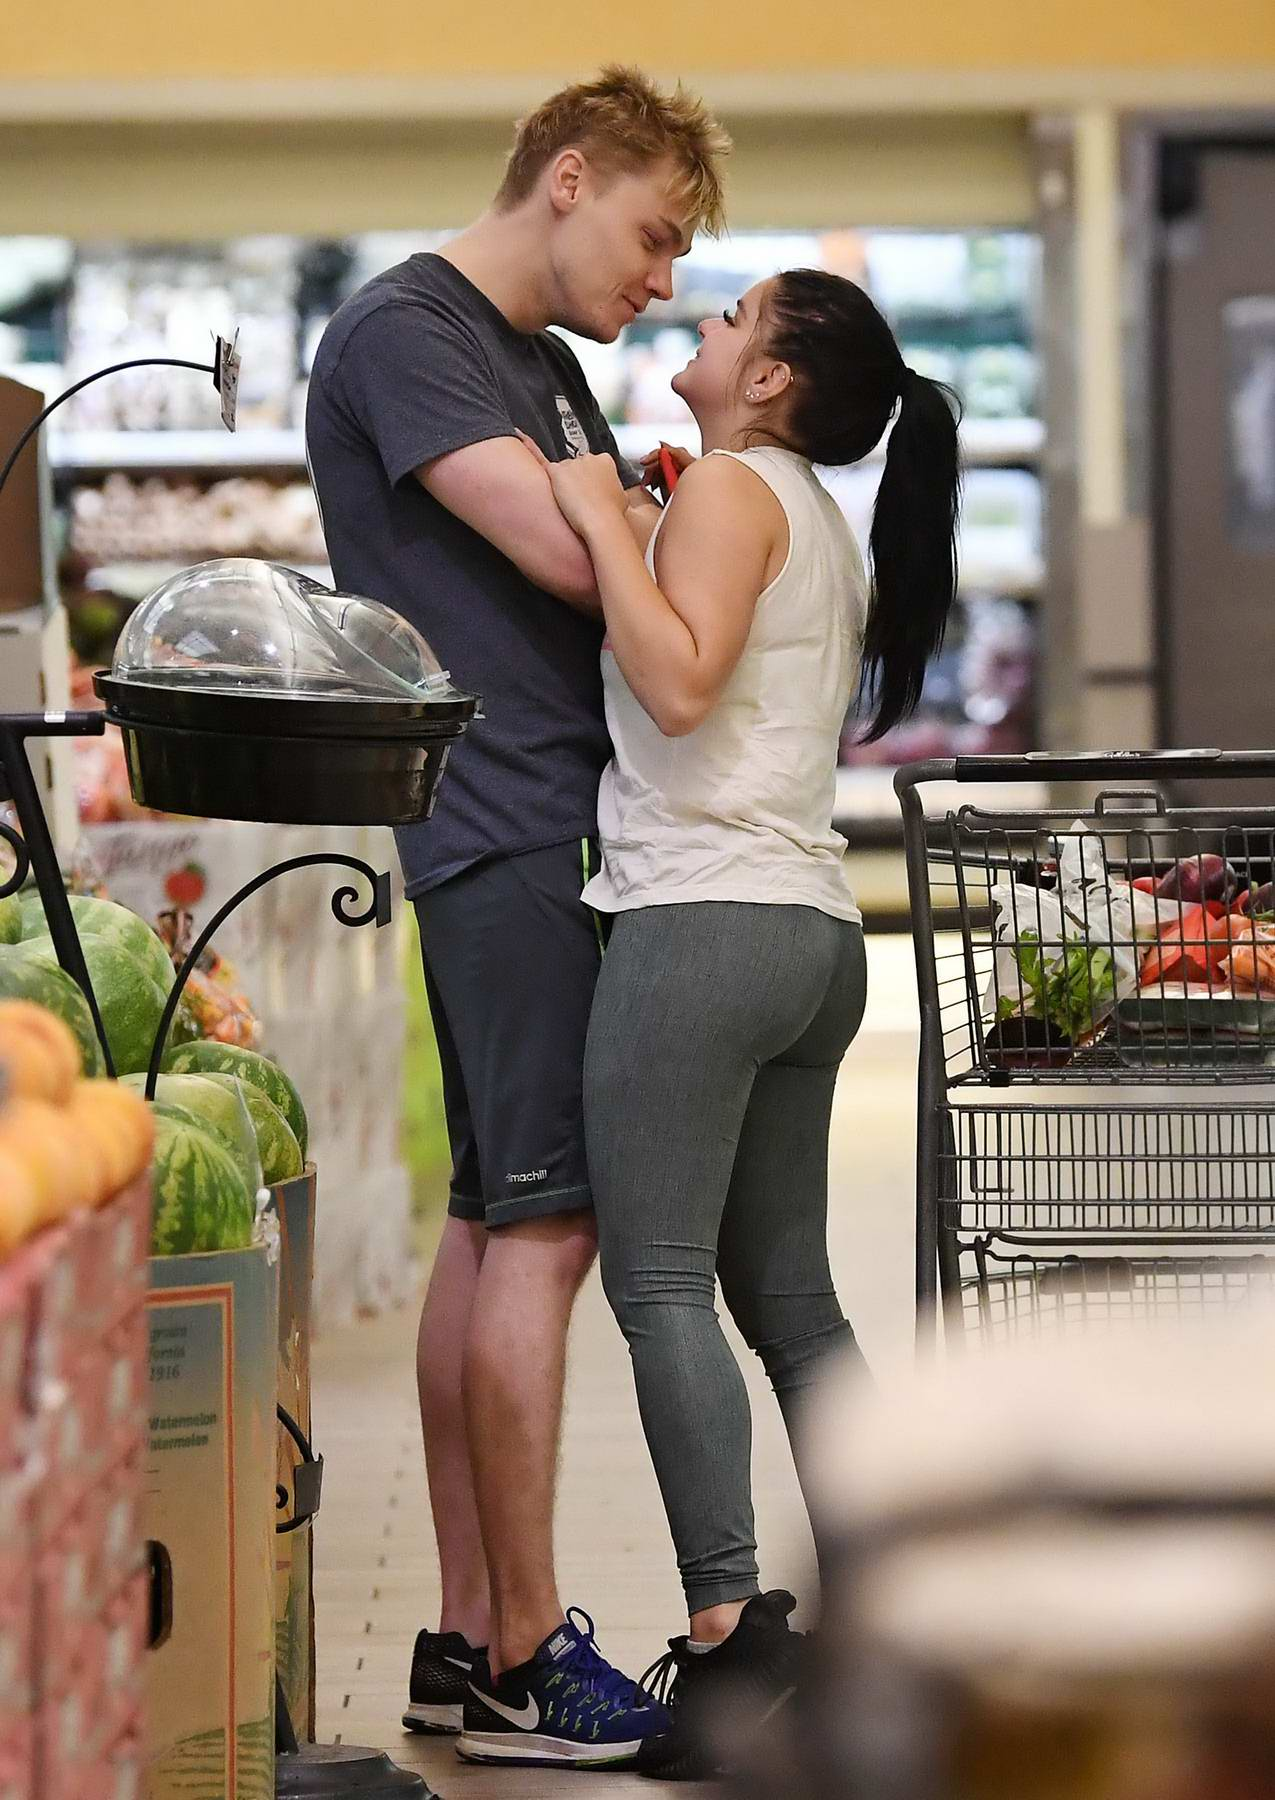 Ariel Winter and Levi Meaden gets cozy while shopping for fruits at a supermarket in Studio City, Los Angeles